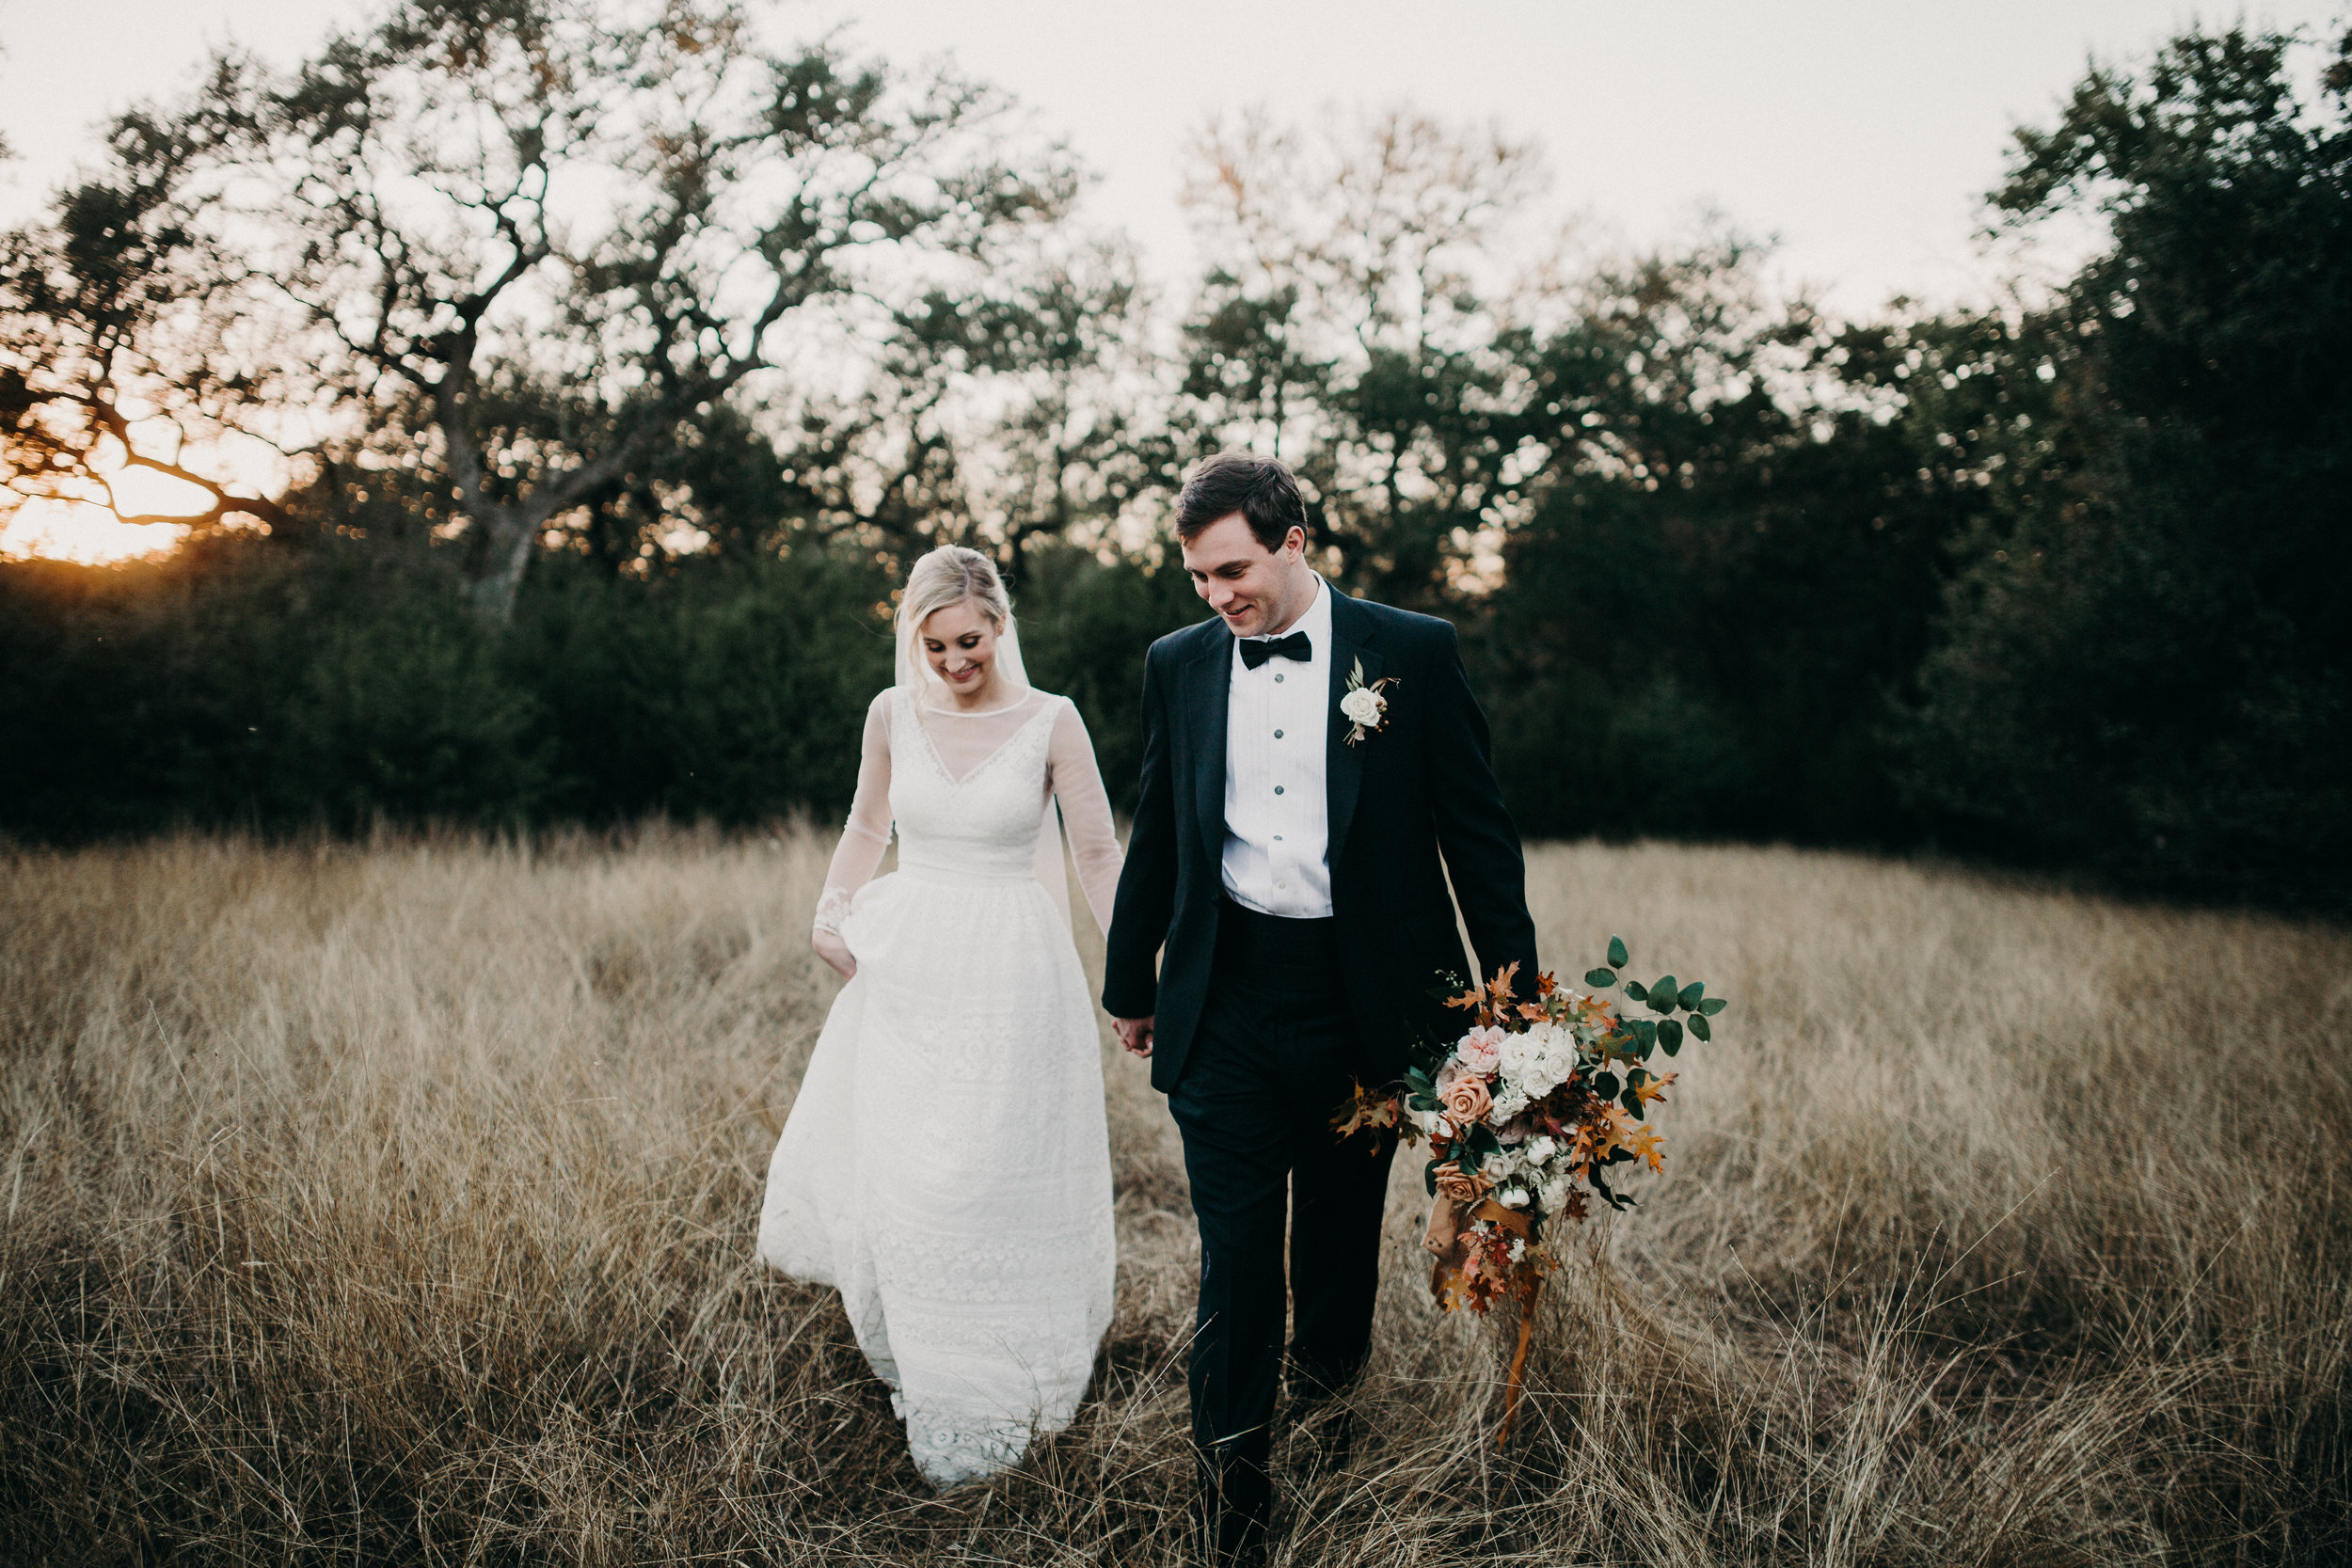 MEGAN & WILL - AUSTIN WEDDING